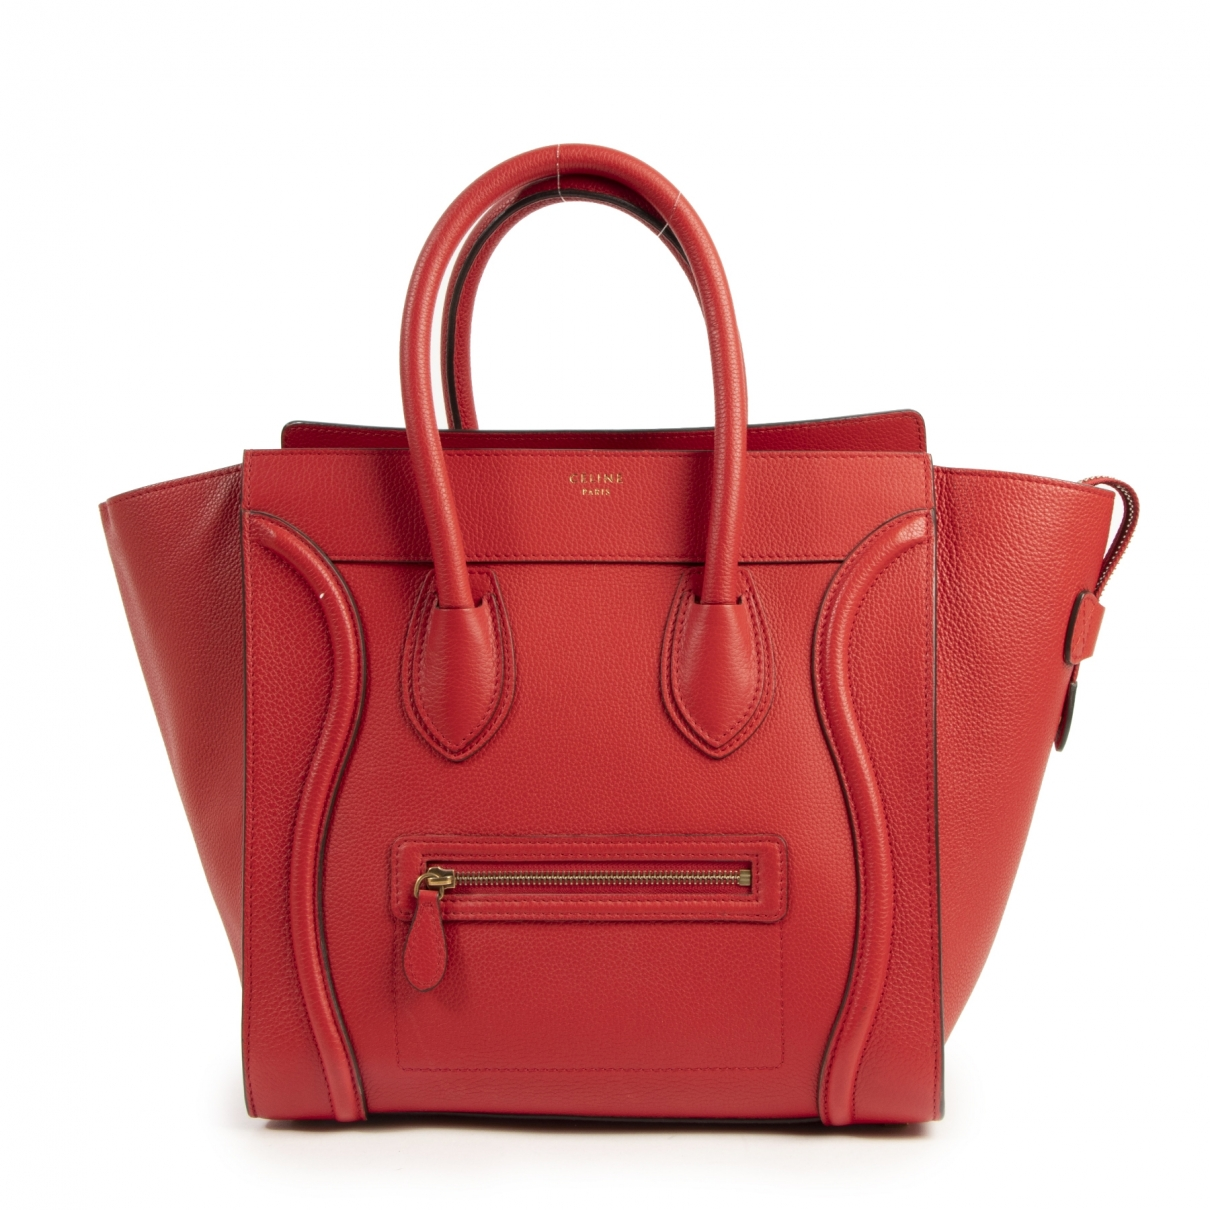 Celine Luggage Red Leather handbag for Women \N